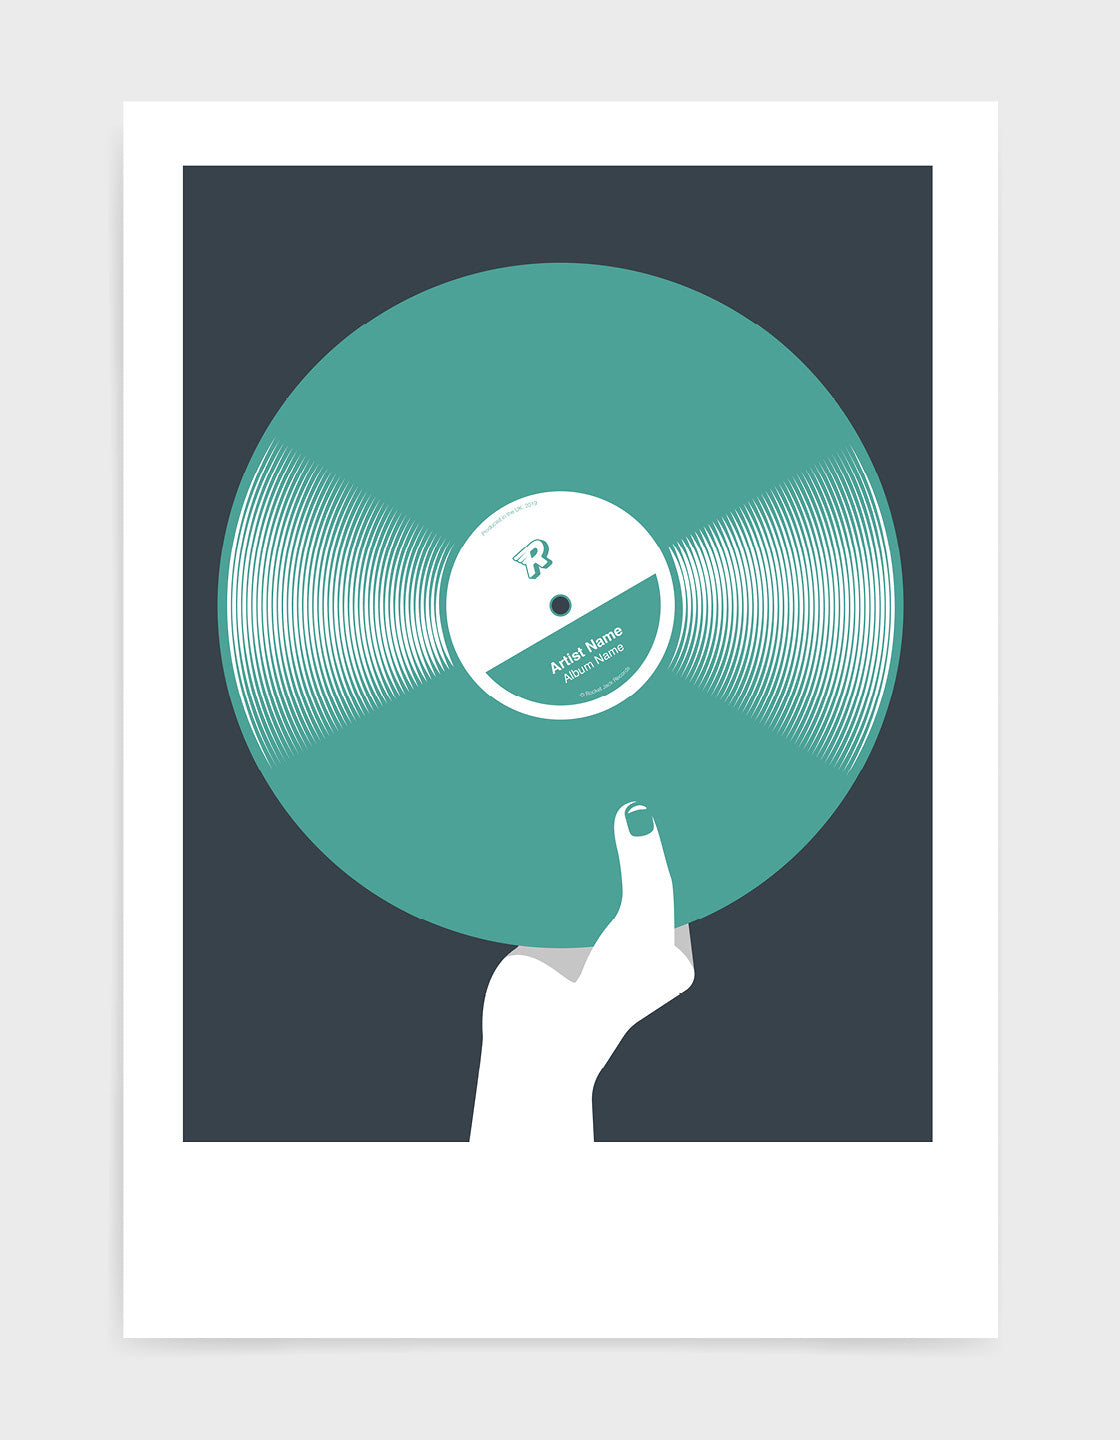 art print image of a personalised green coloured vinyl record held in a hand with red nails against a black background